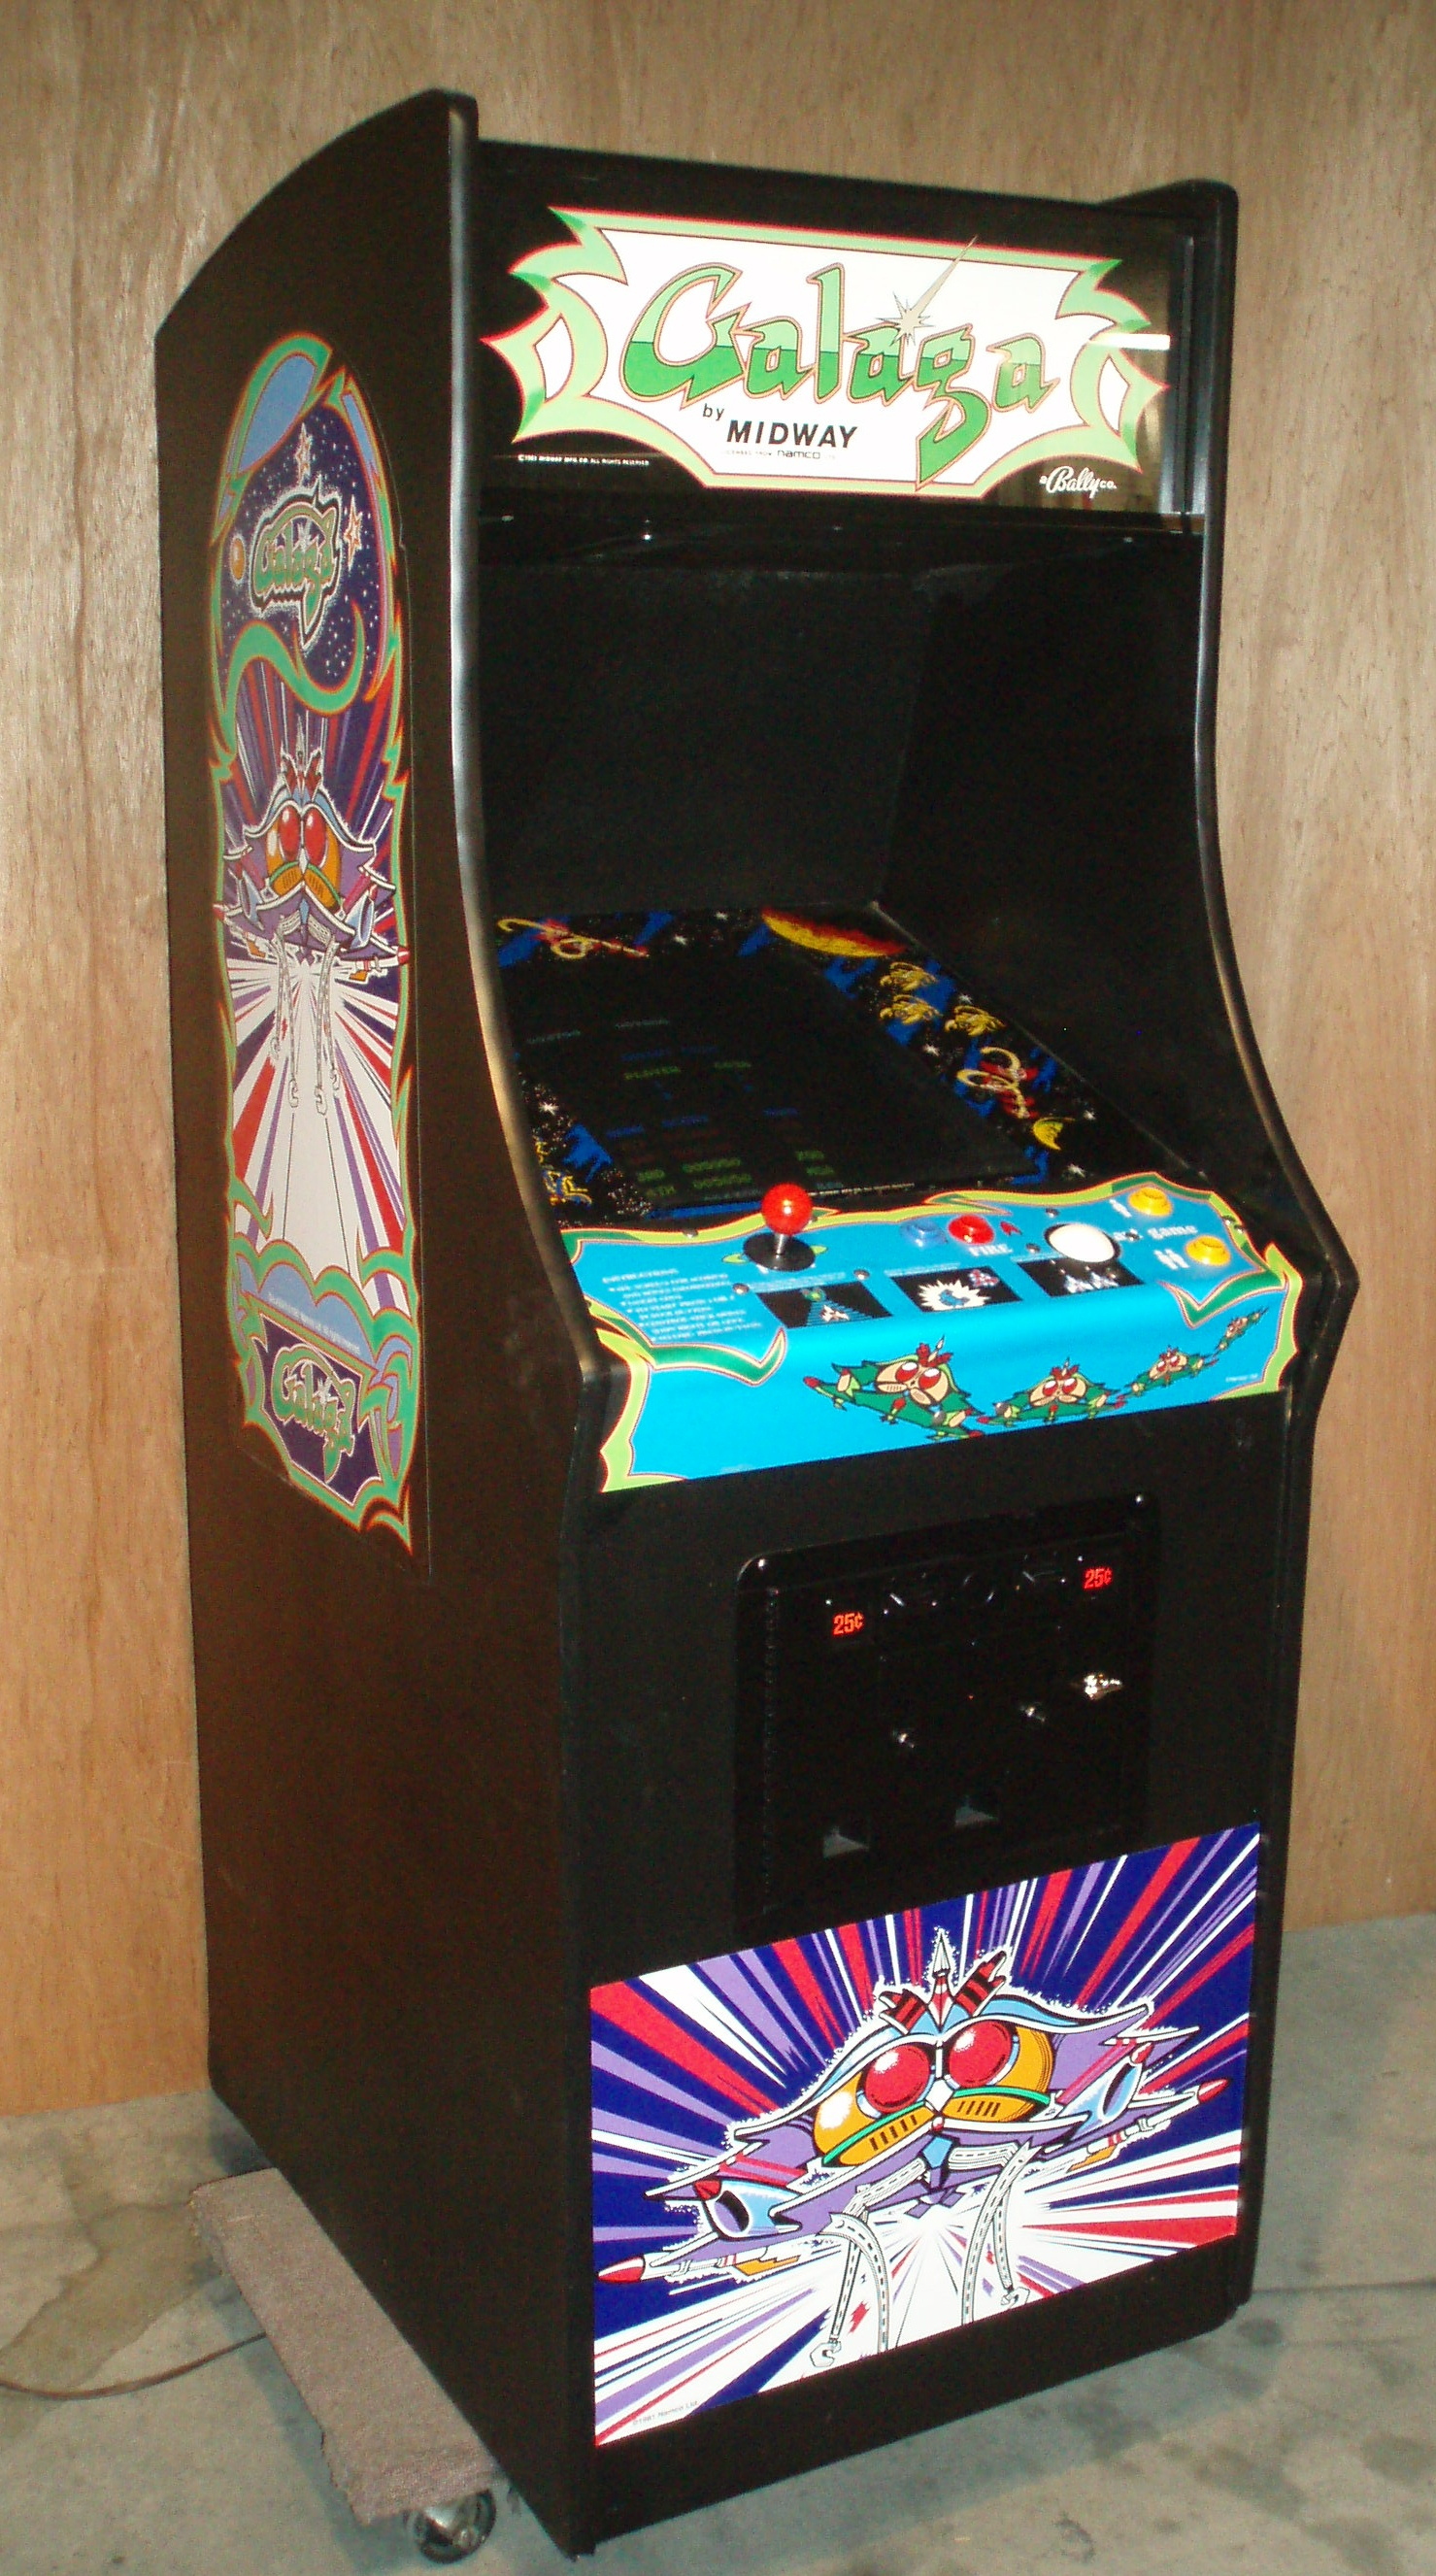 Wondrous How To Apply Art Graphics To An Arcade Video Game Cabinet Download Free Architecture Designs Rallybritishbridgeorg